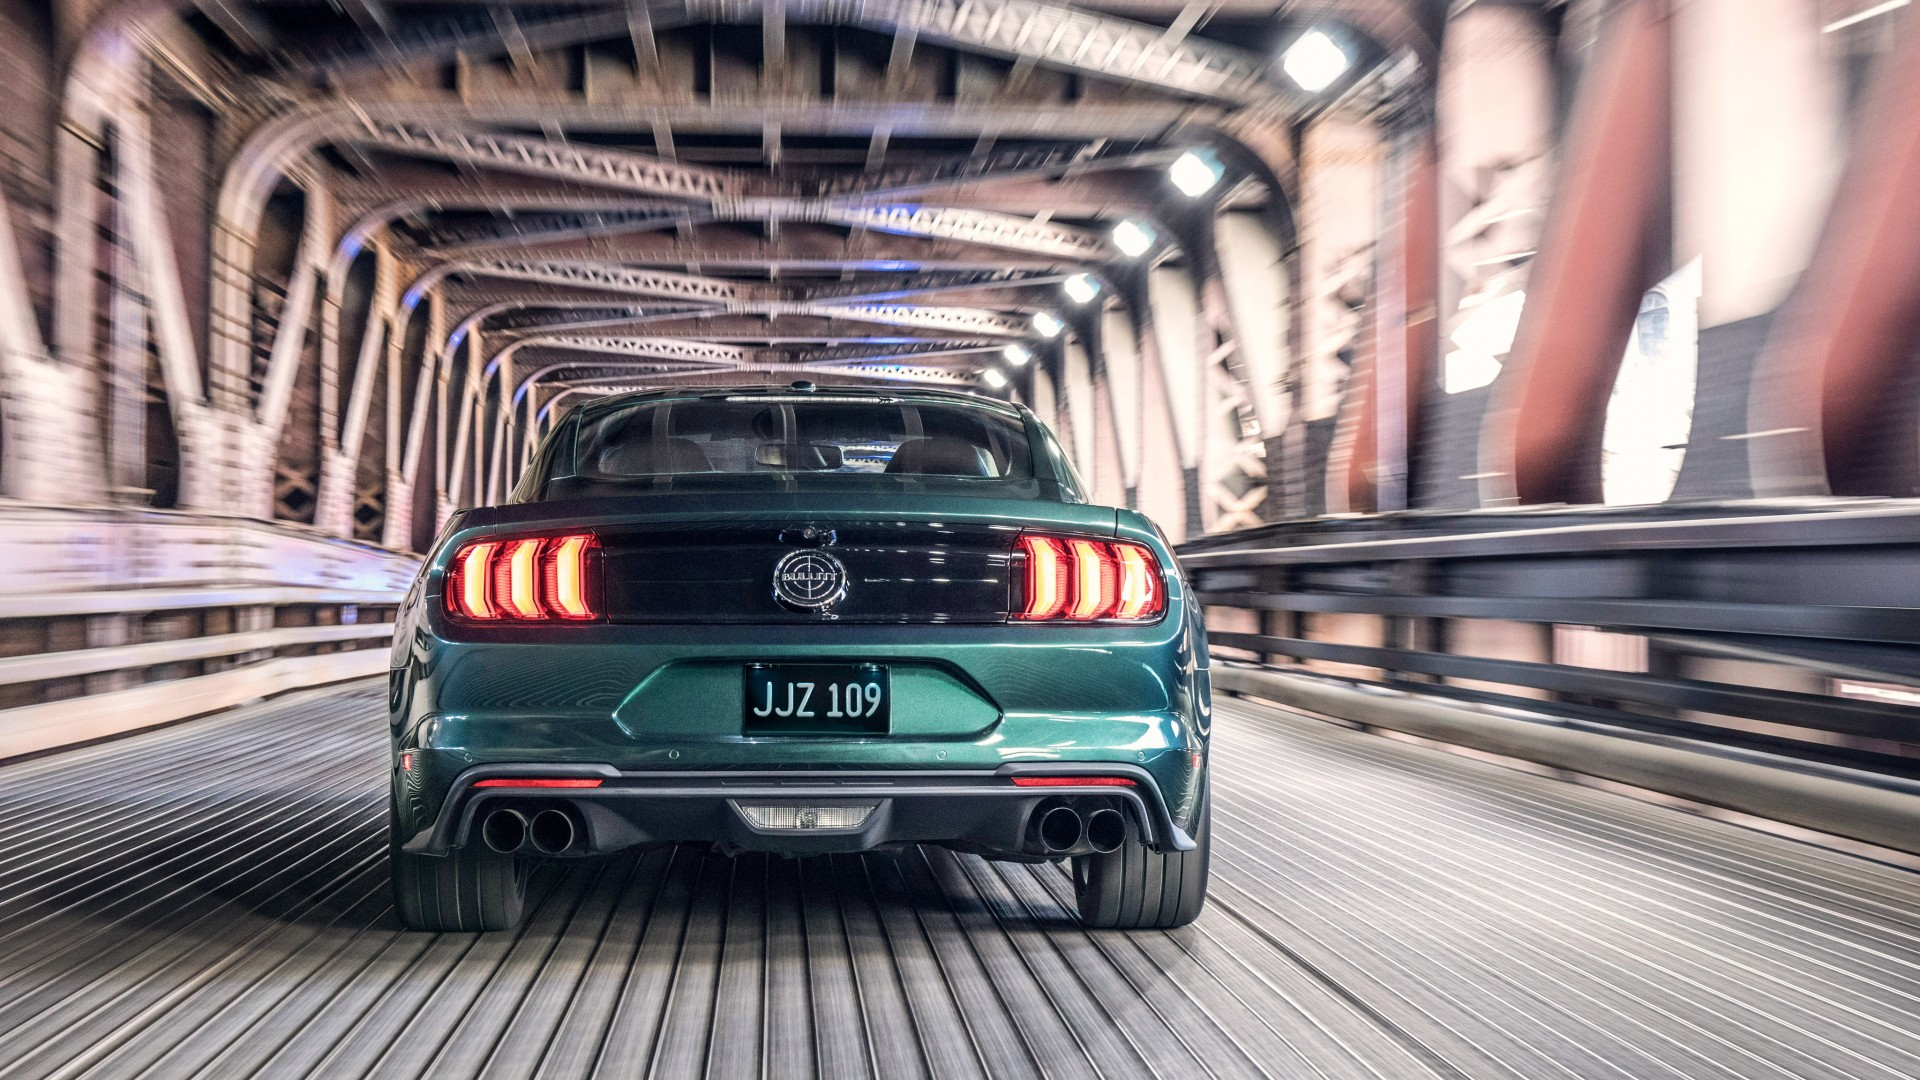 2019 Ford Mustang Bullitt 4k 2 Wallpaper Hd Car